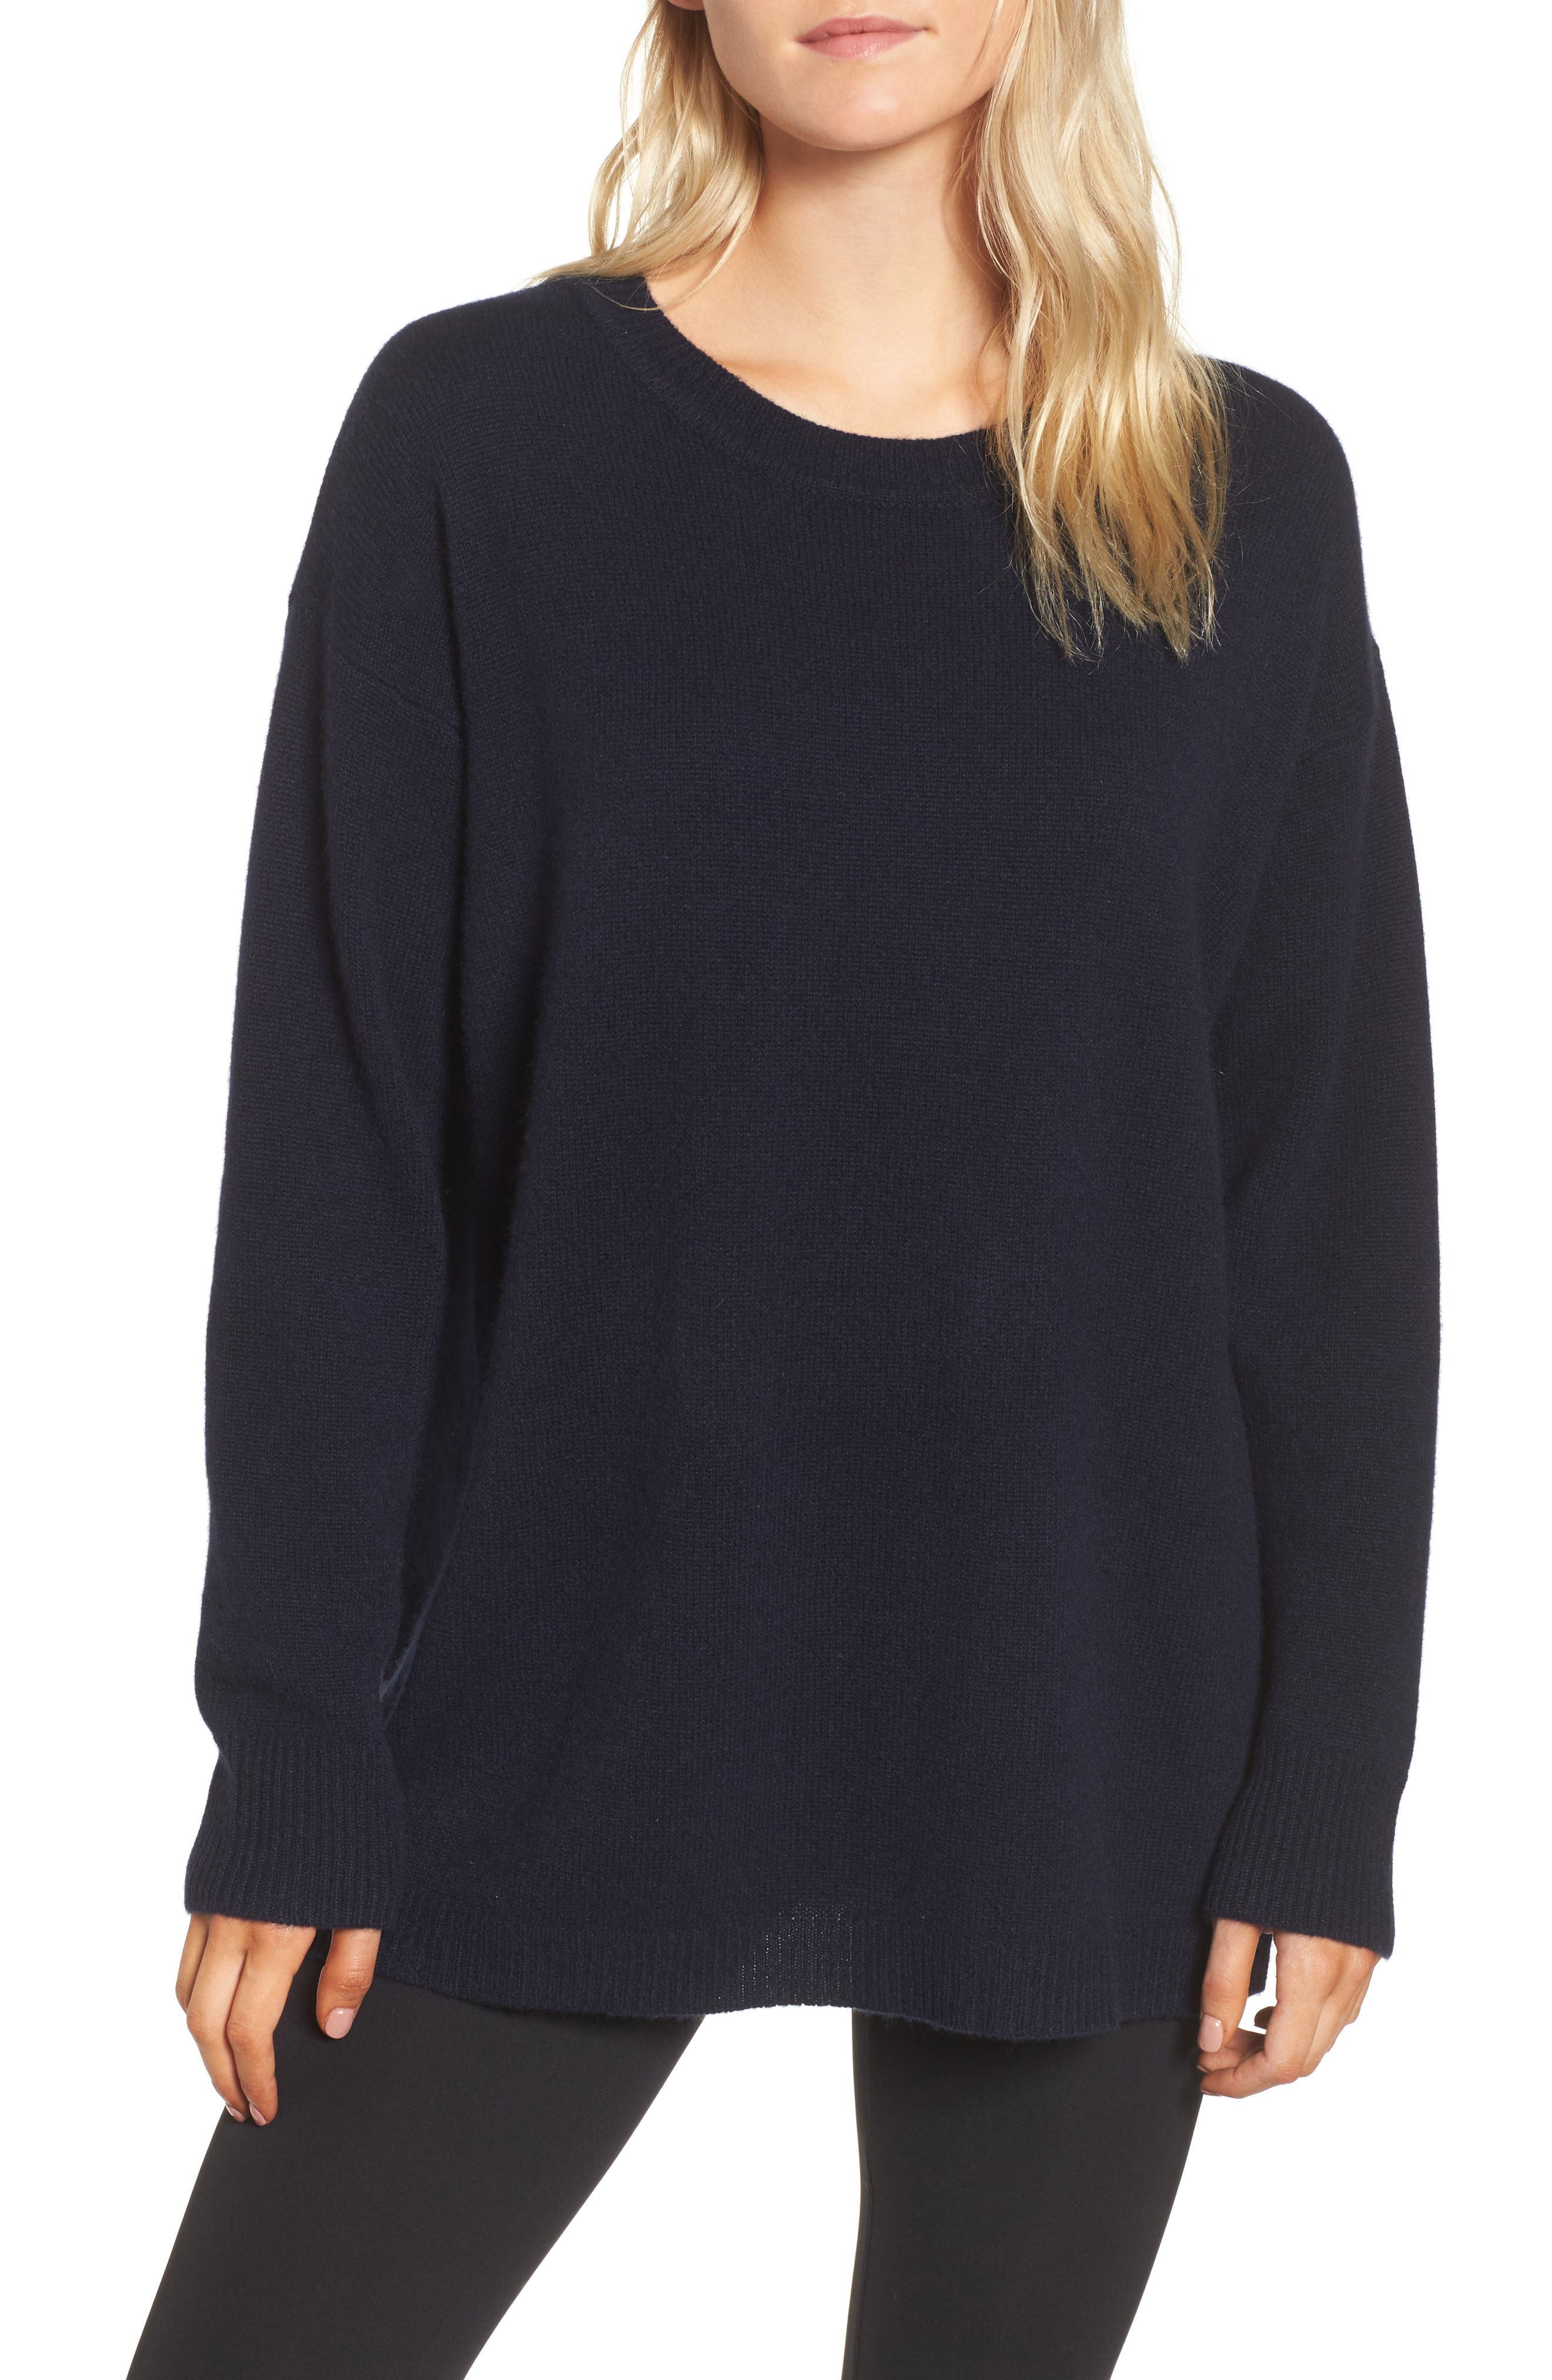 James Perse Oversize Cashmere Sweater